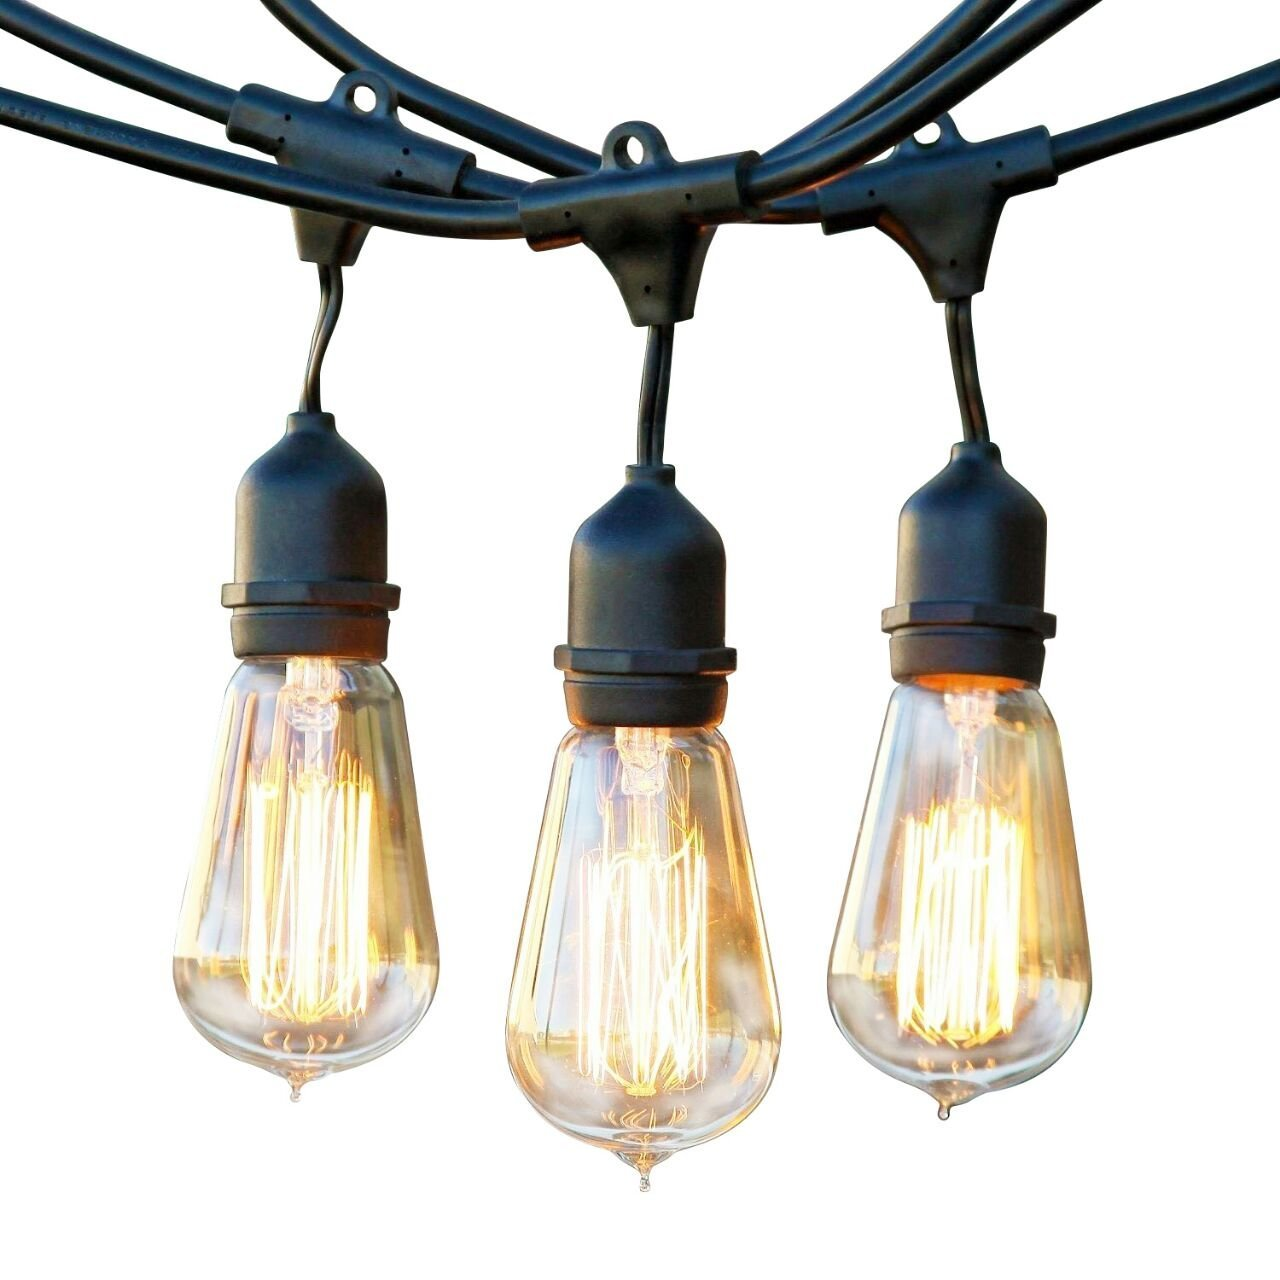 Brightech Ambience Pro - Waterproof Incandescent Outdoor String Lights - Hanging Vintage Edison Filament Bulbs - 48 Ft Market Lights Create Ambience On Your Deck, Balcony